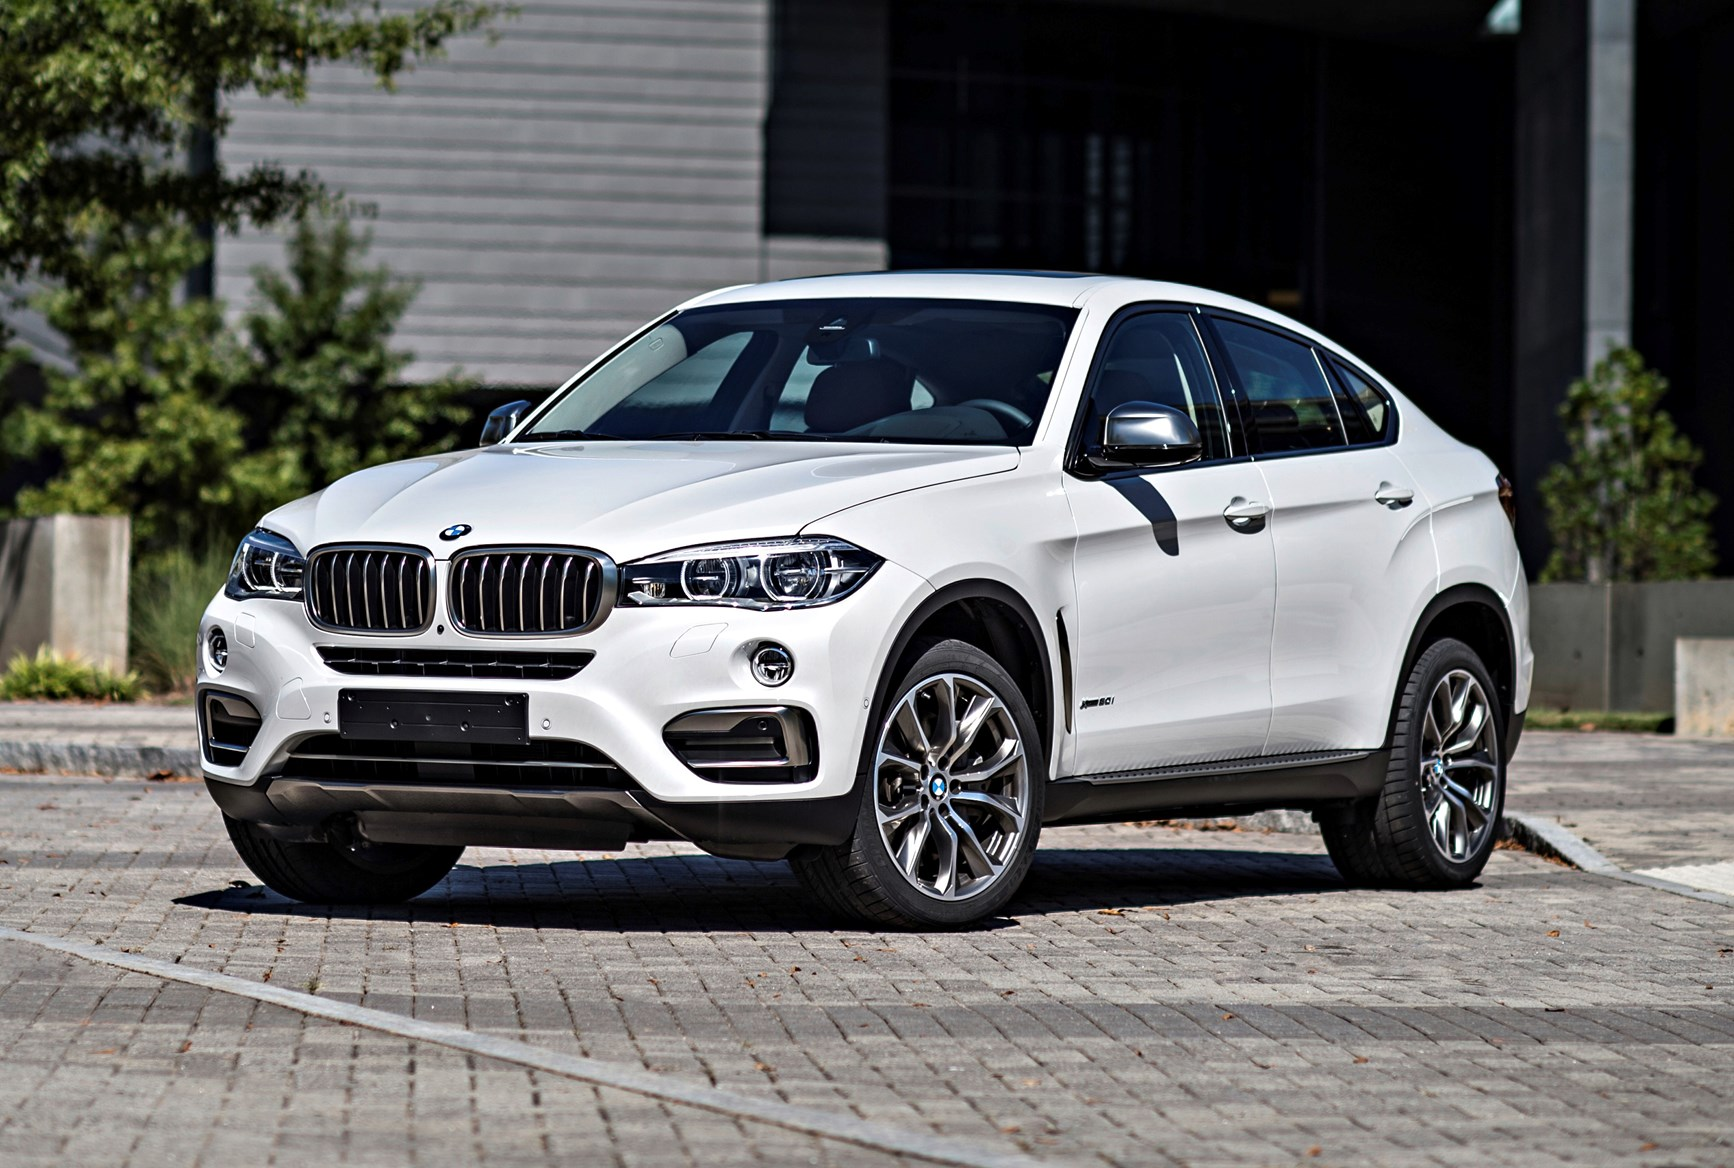 Bmw X6 Used For Sale Uk Bmw X6 4x4 Review 2014 Parkers